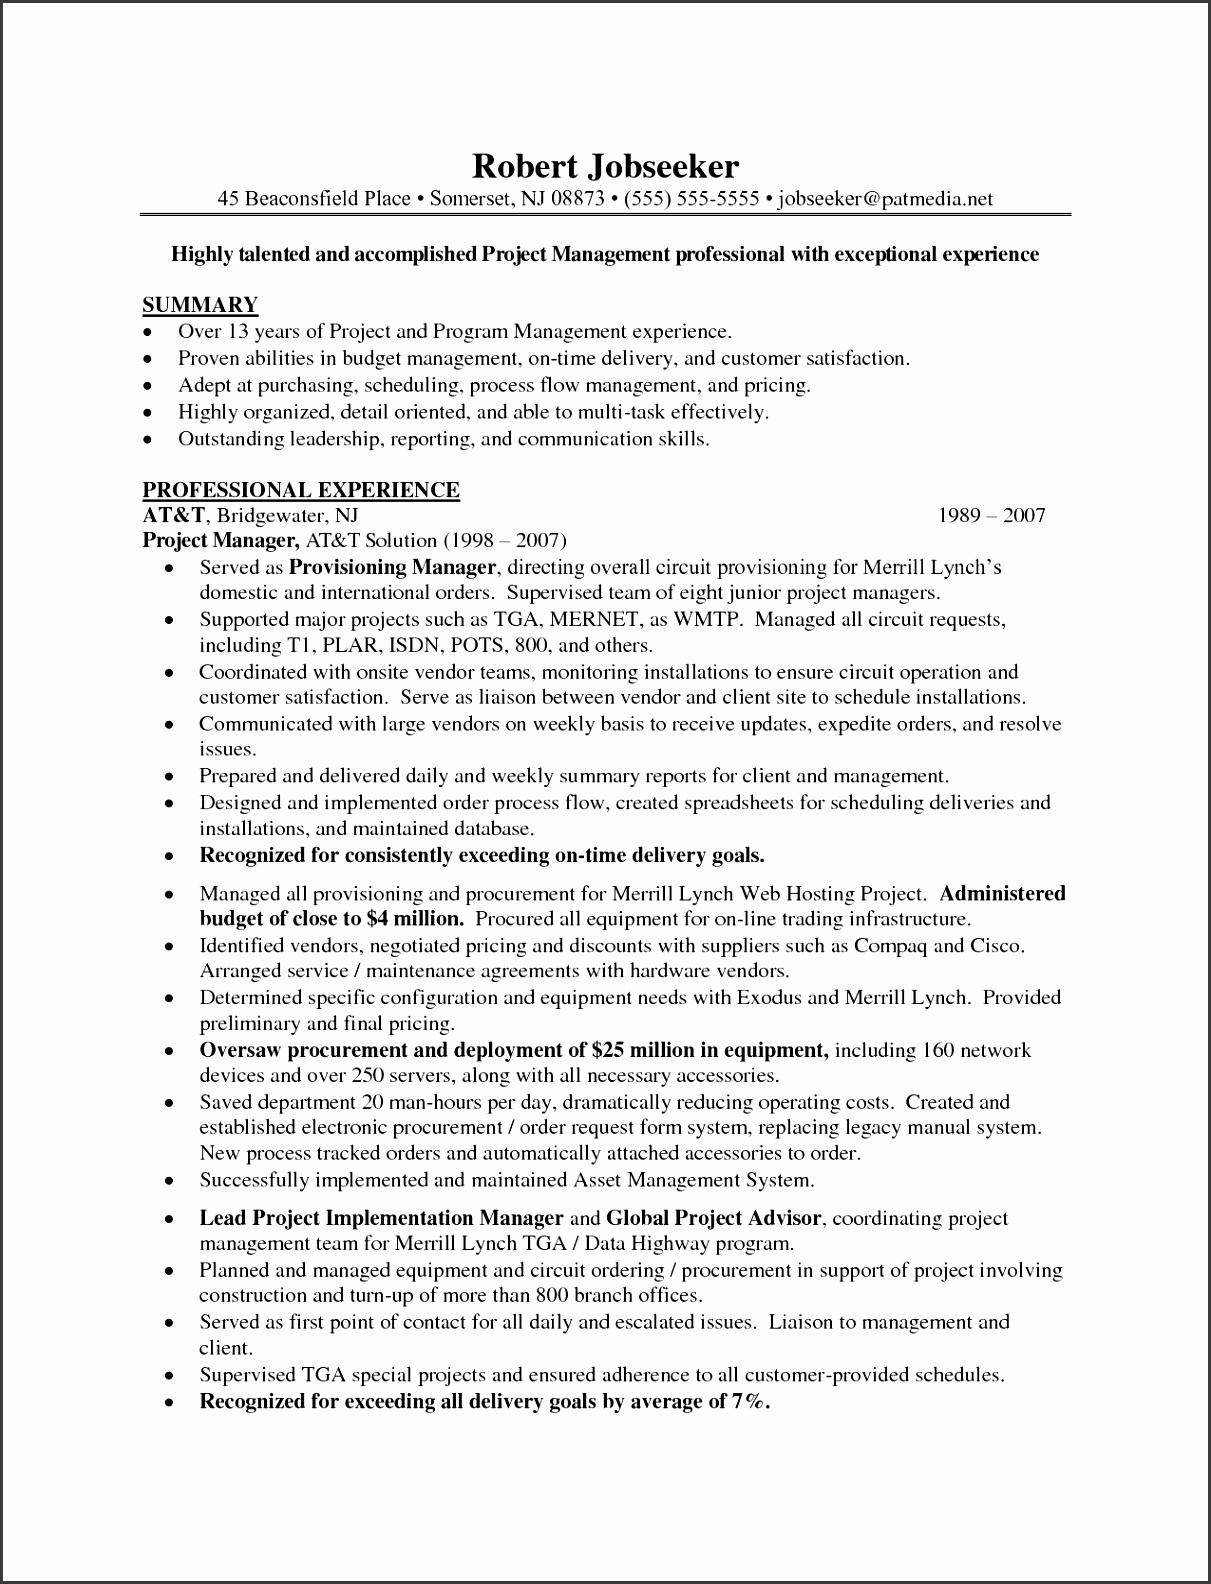 Project Manager Cv Template Construction Project Management Jobs Construction Project Manager Resume Template